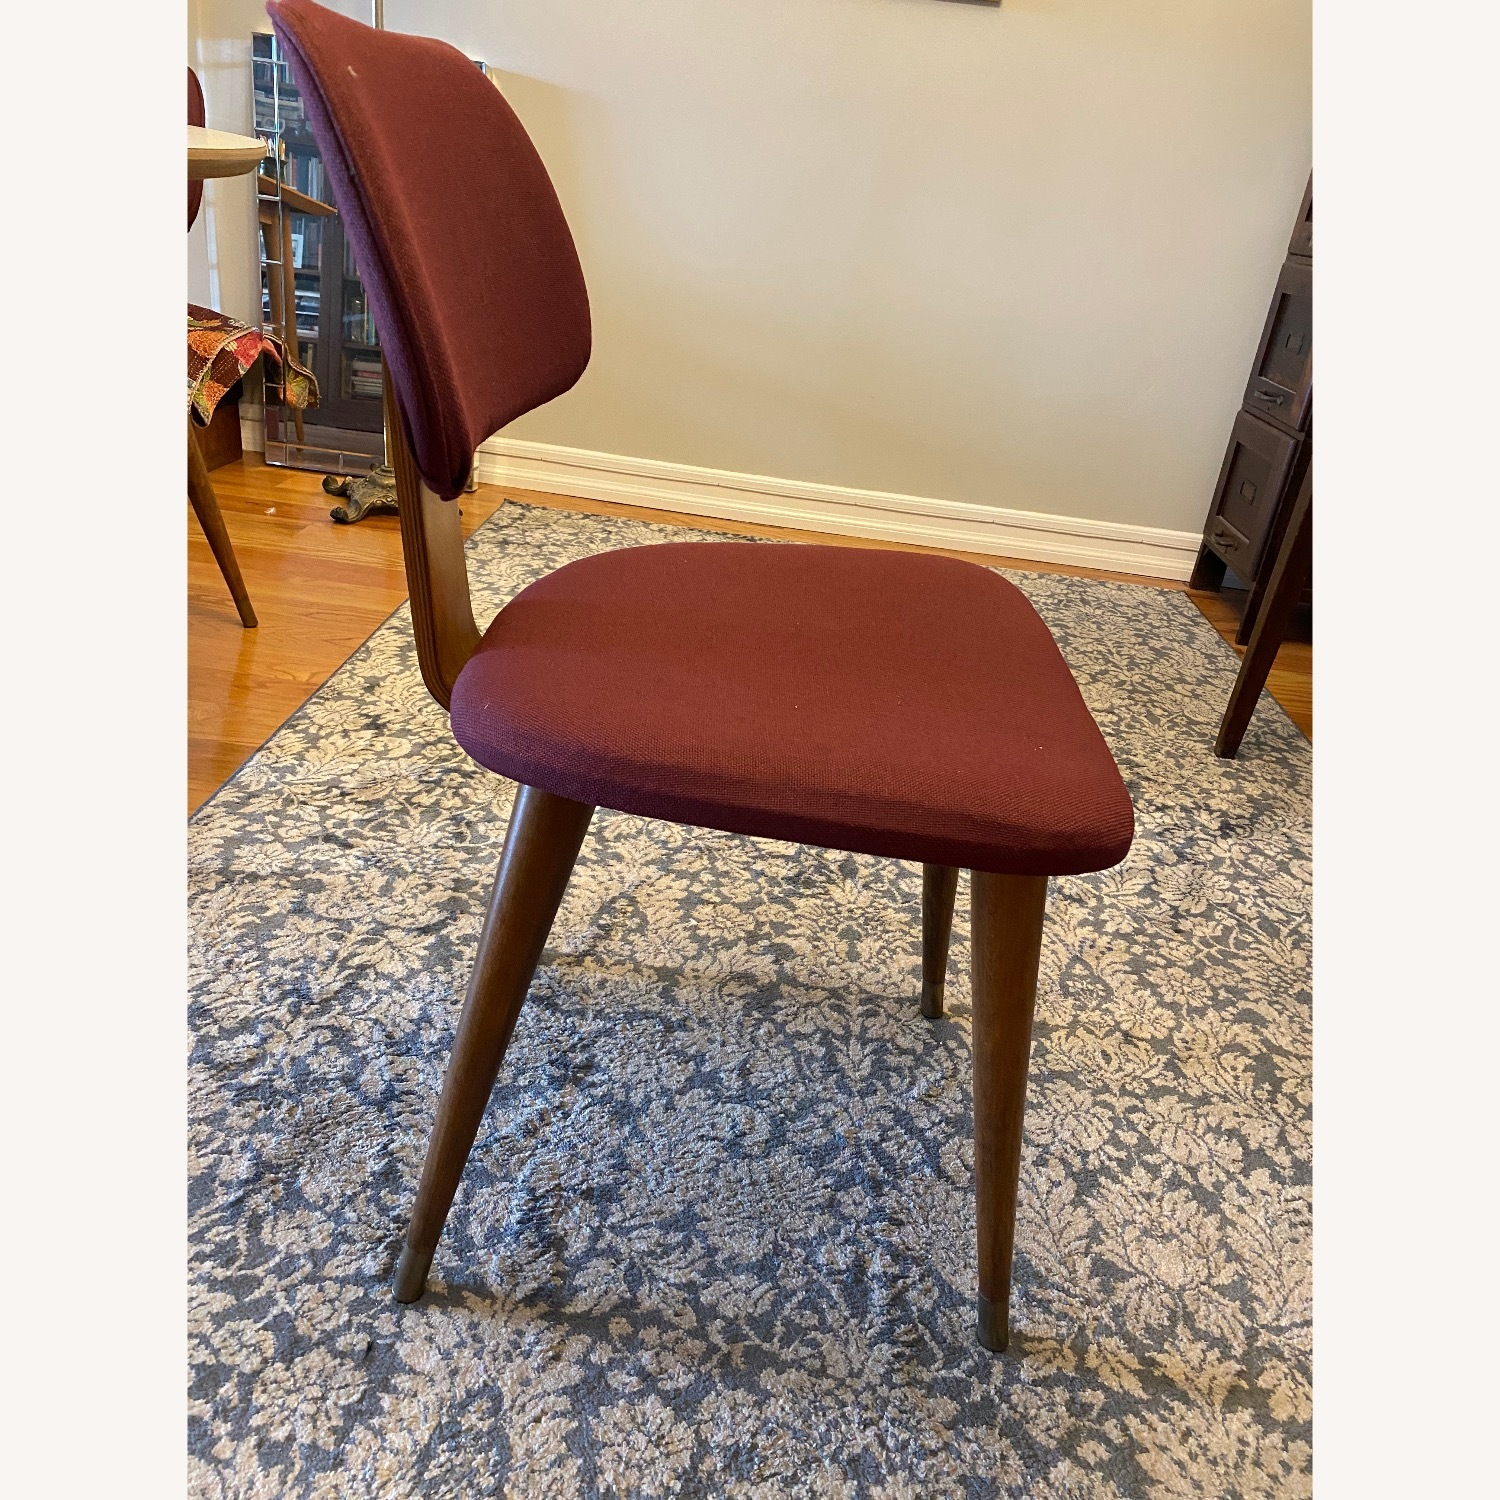 Midcentury Dining Chairs - image-2